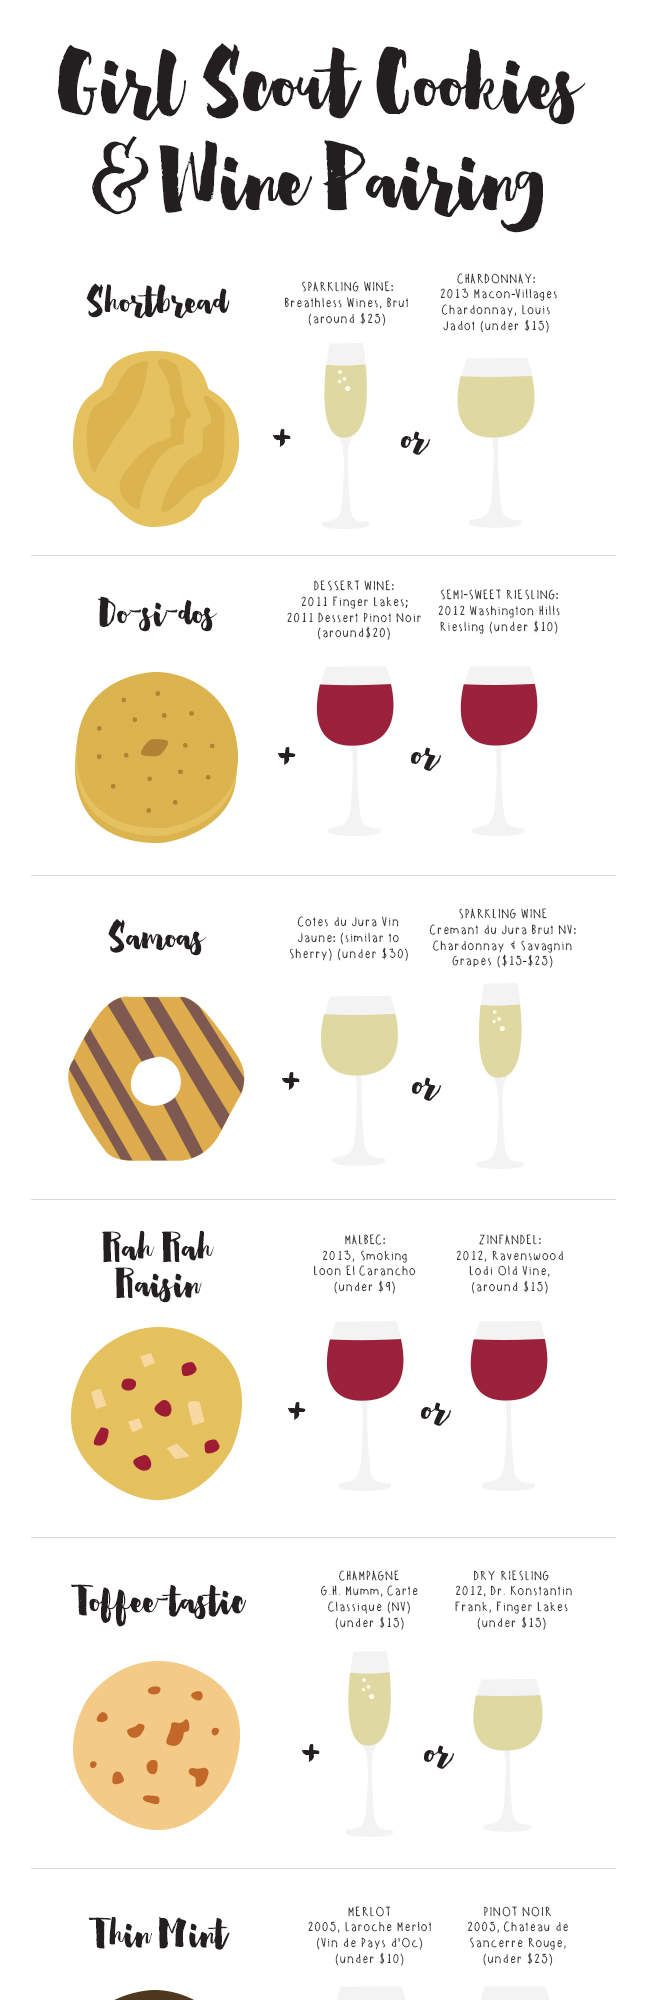 These Are the Wines You Need to Pair With Your Girl Scout Cookies